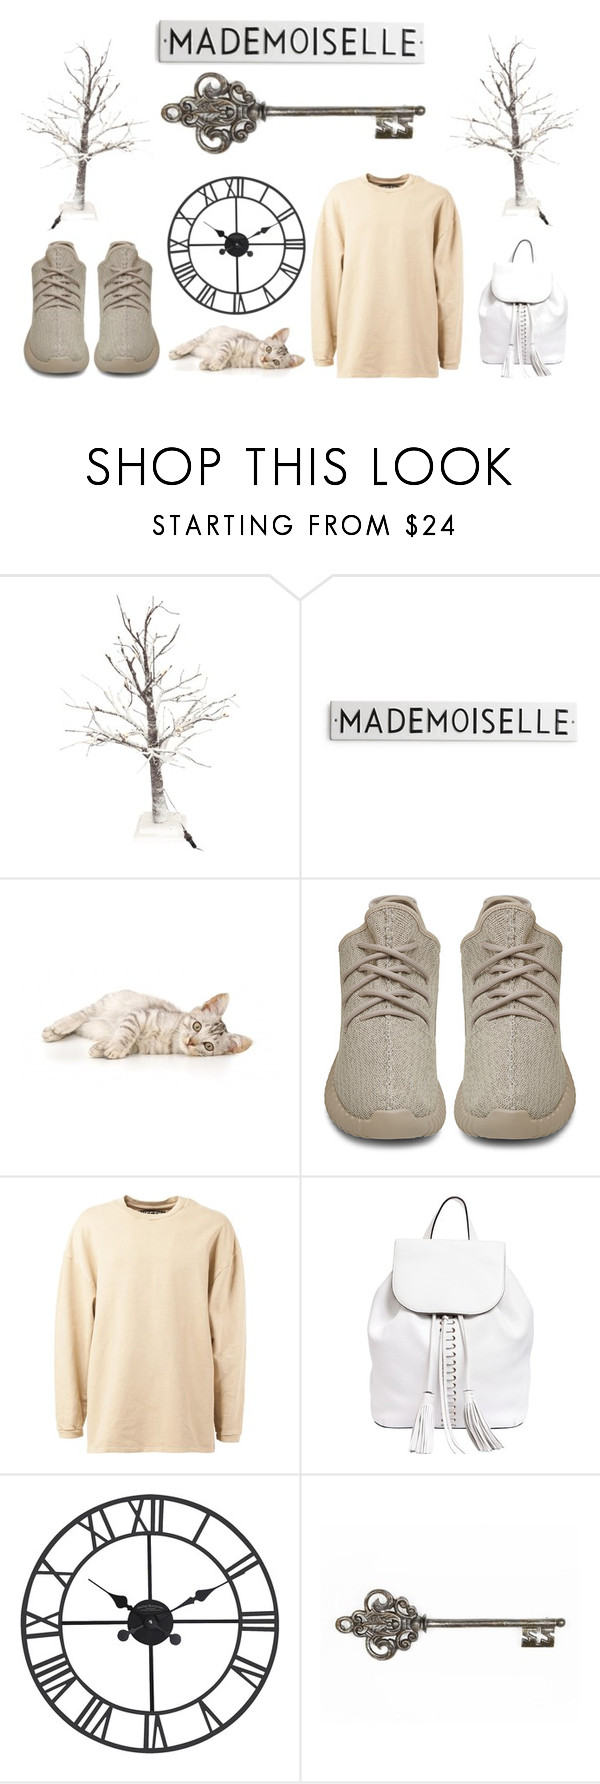 """Pale Snowy Winter"" by tamara-kotoyan on Polyvore featuring adidas Originals, Rebecca Minkoff, women's clothing, women's fashion, women, female, woman, misses and juniors"